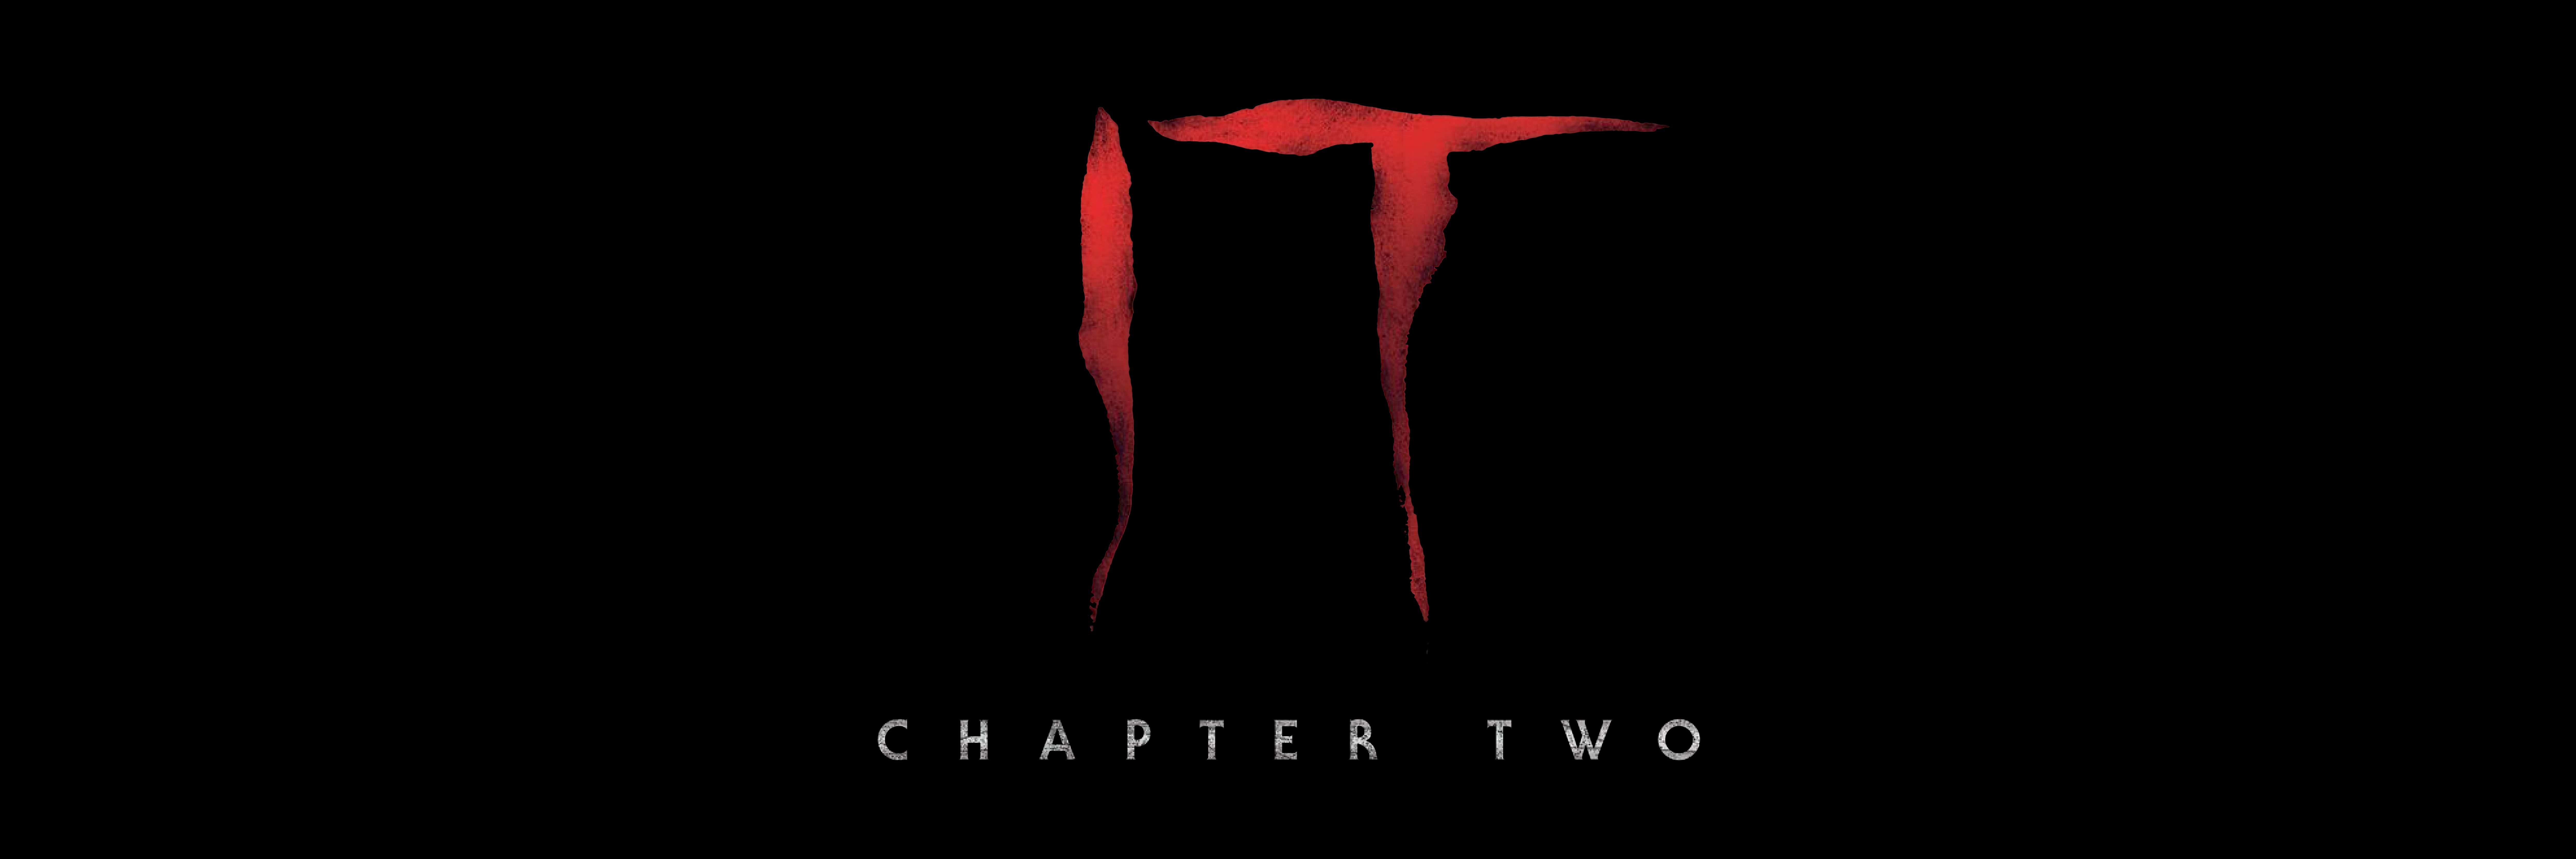 Movie Review: IT Chapter 2 is an emotional rollercoaster